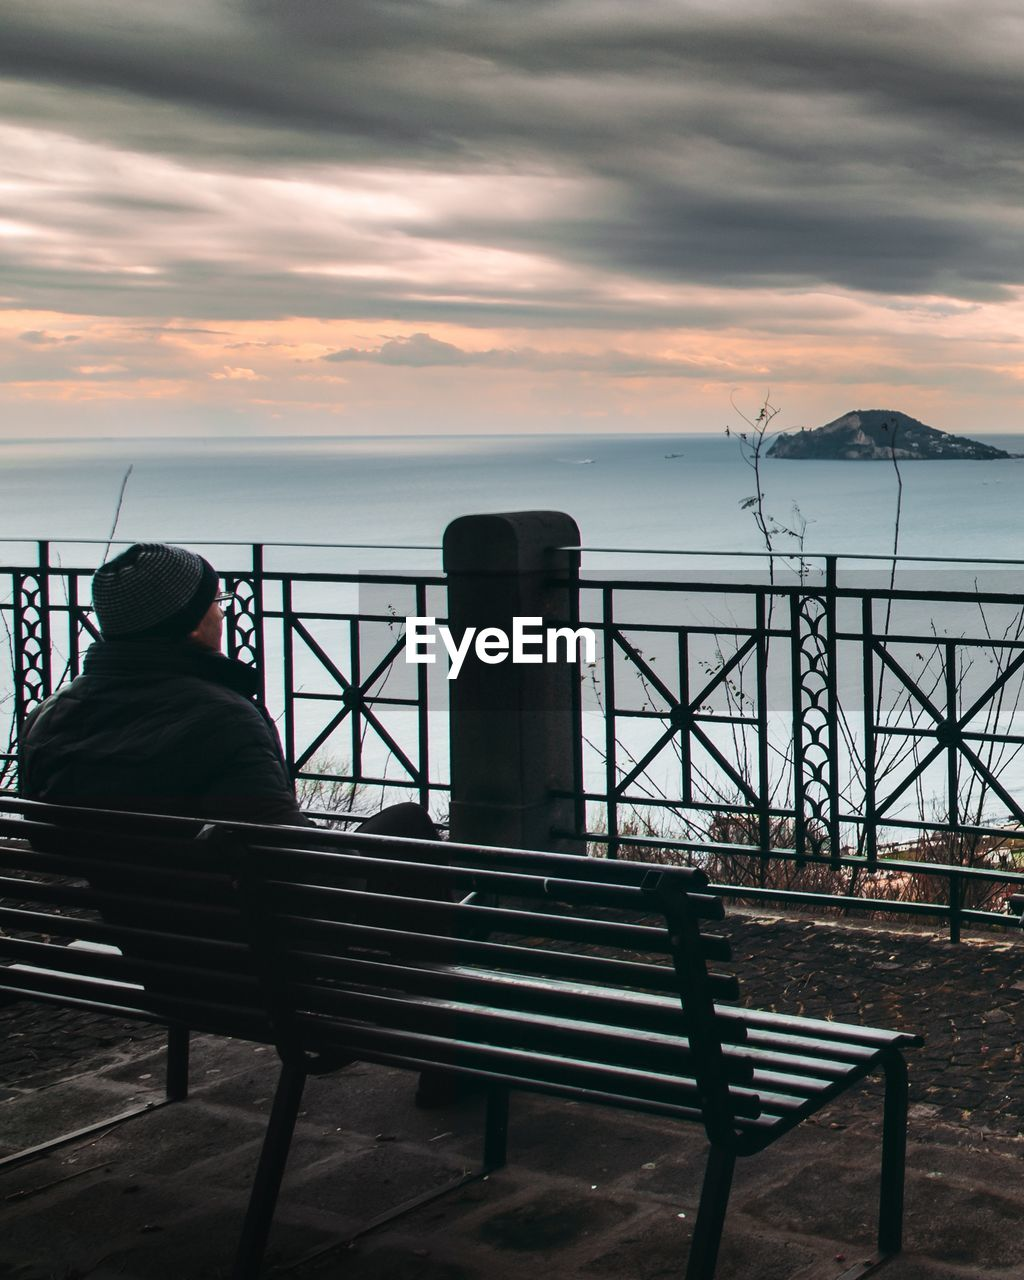 sea, water, railing, nature, real people, scenics, sky, one person, sunset, horizon over water, beauty in nature, tranquil scene, rear view, fishing pole, idyllic, tranquility, cloud - sky, outdoors, leisure activity, fishing, sitting, relaxation, full length, day, lifestyles, men